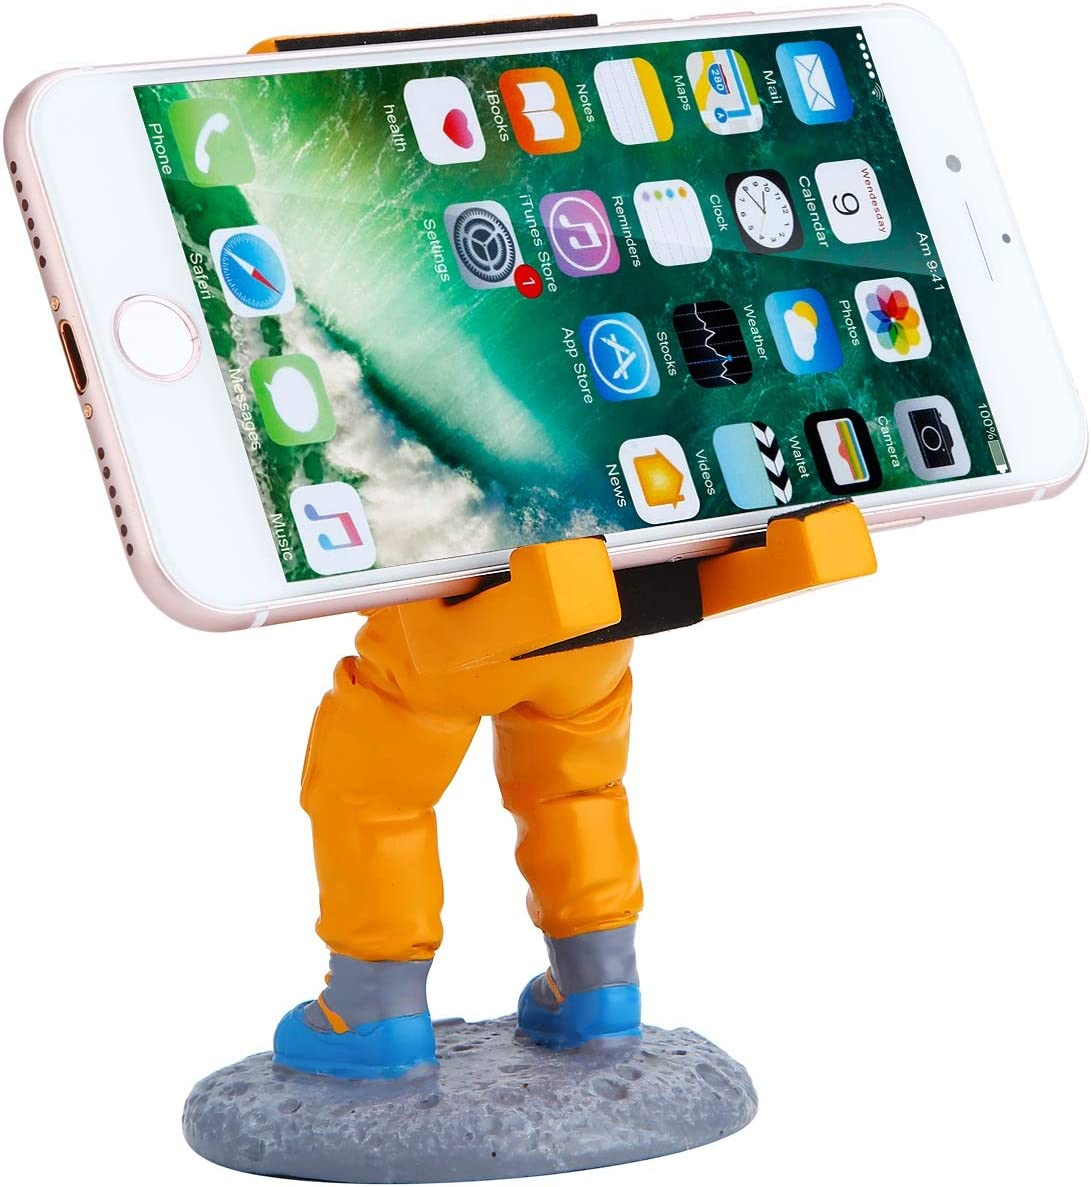 Color : White Mobile Phone Stand for iPhone X//XS Practical Spaceman Pattern Mobile Phone Stand Holder Resin Bracket for Smart Phone Mobile Phone Holder BLWX Cell Phone Stand